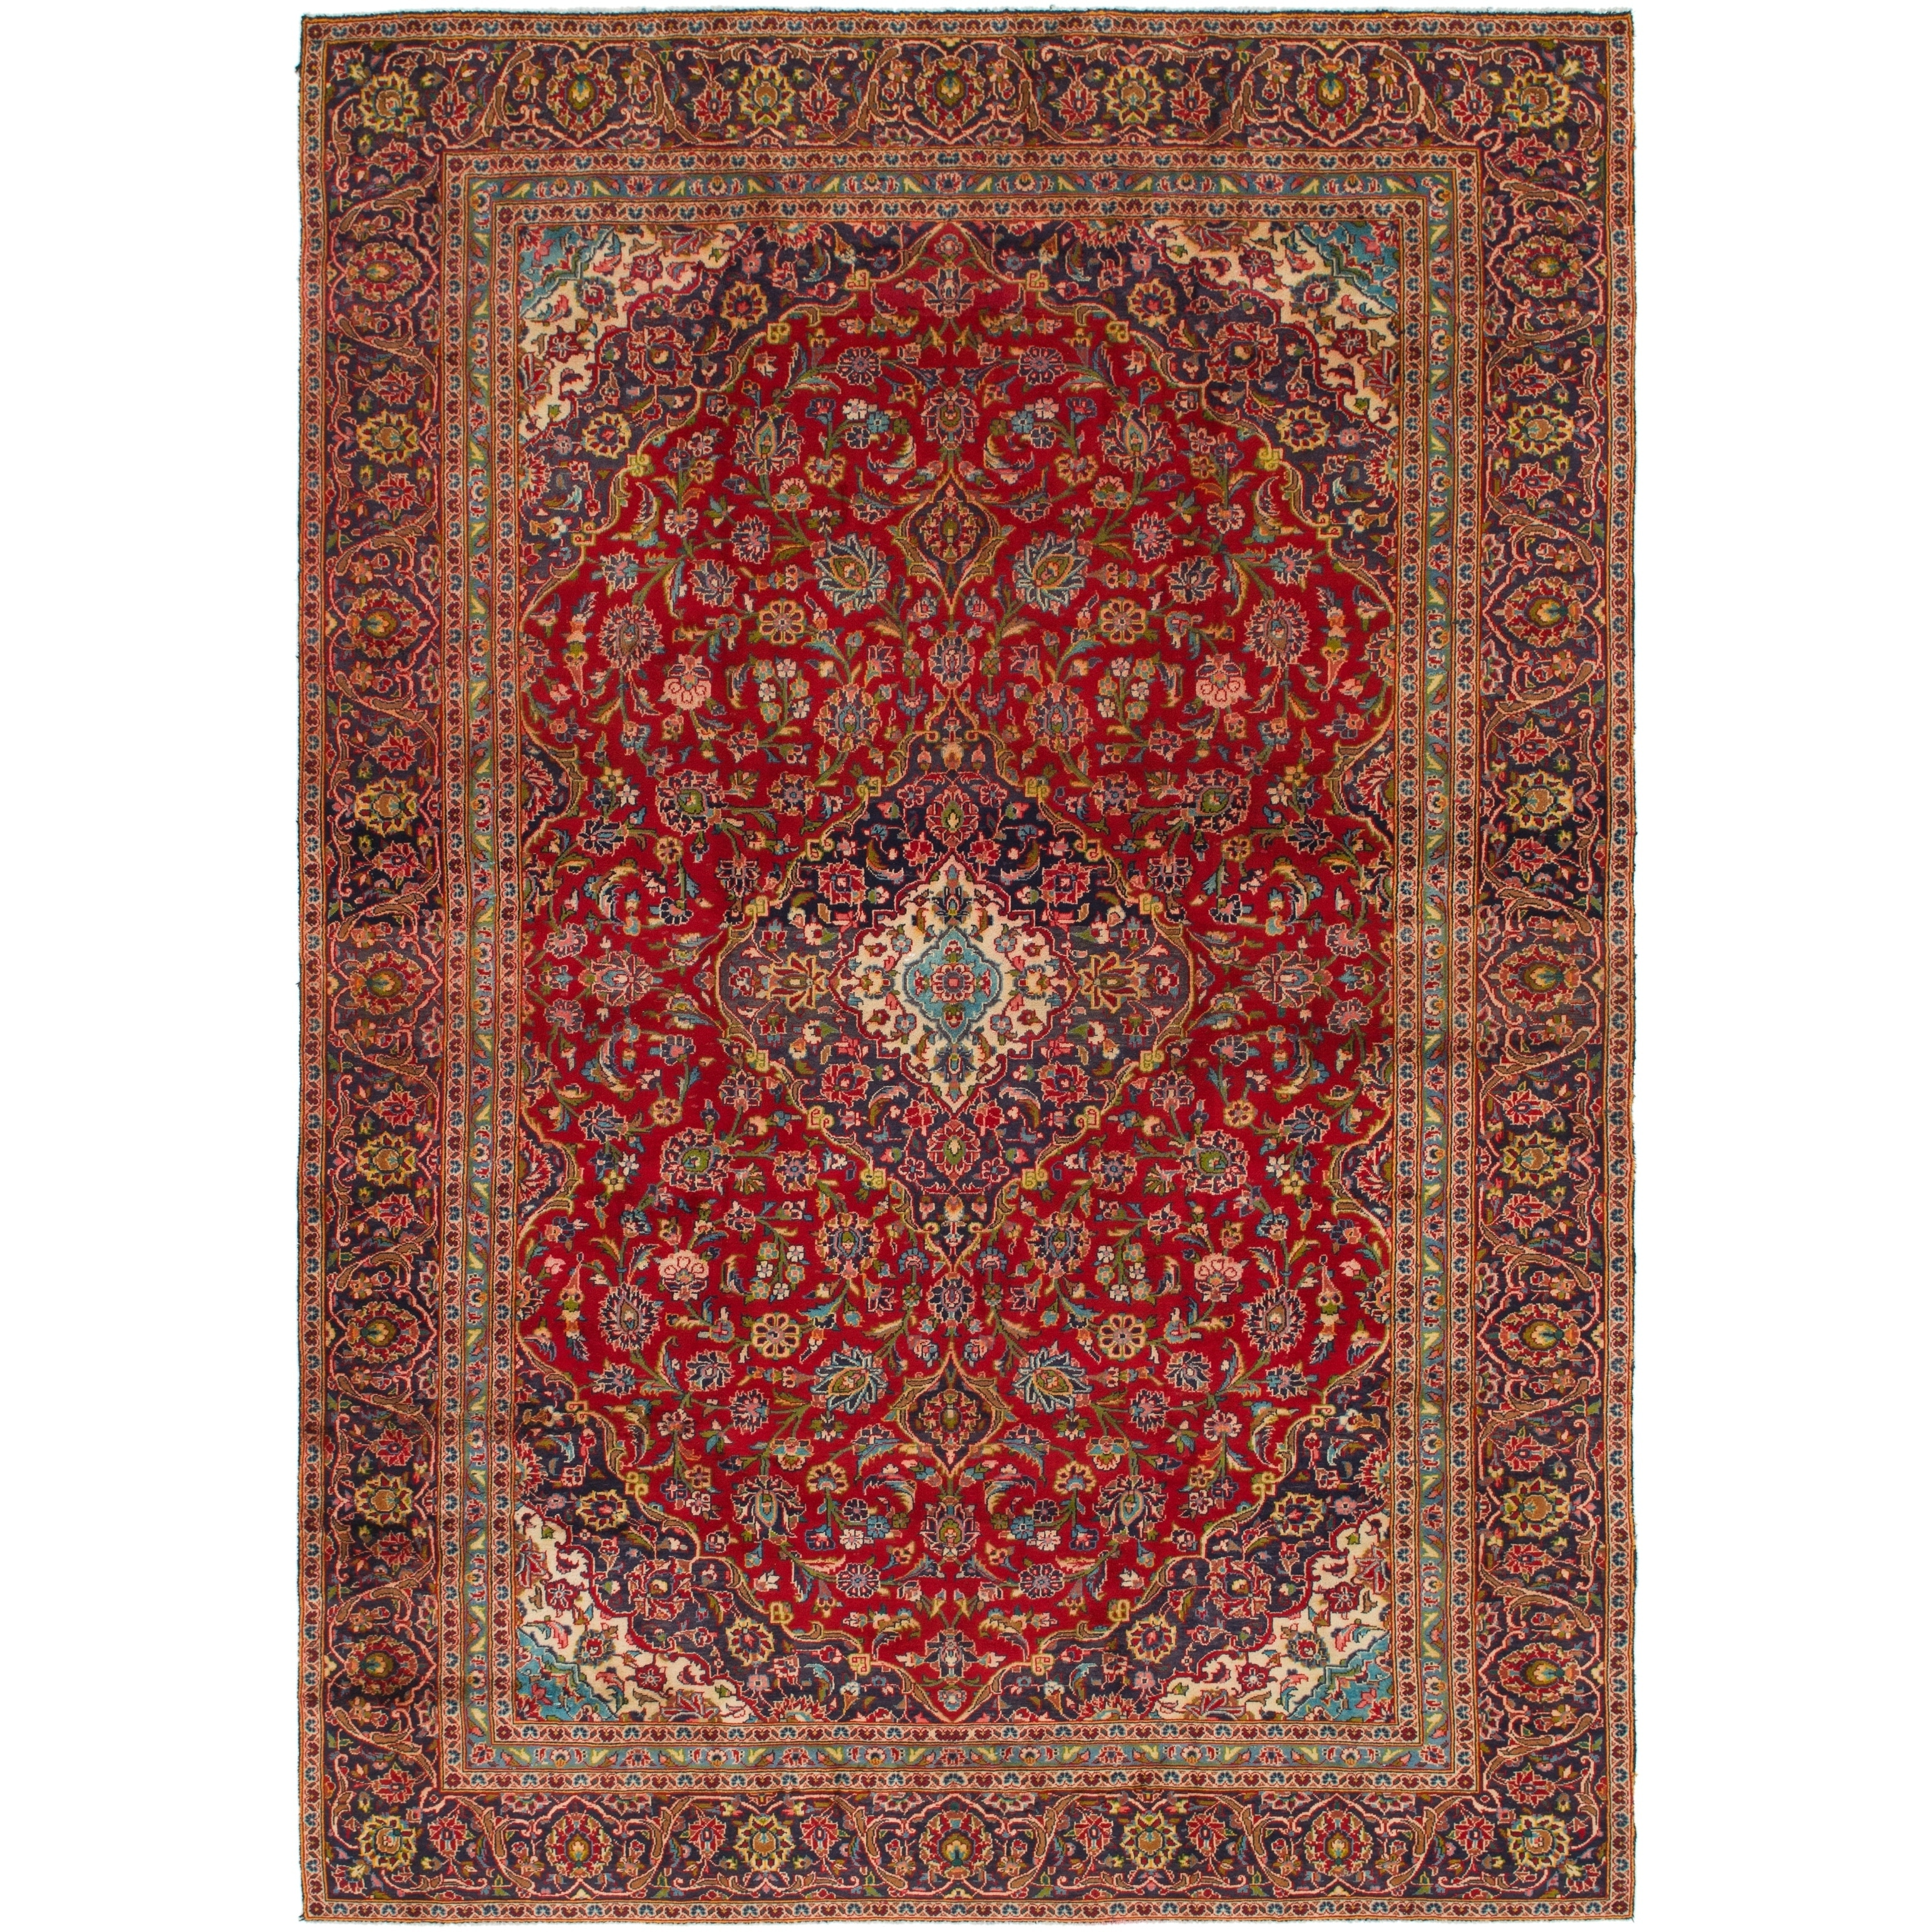 Hand Knotted Kashan Semi Antique Wool Area Rug - 9 x 12 10 (Red - 9 x 12 10)